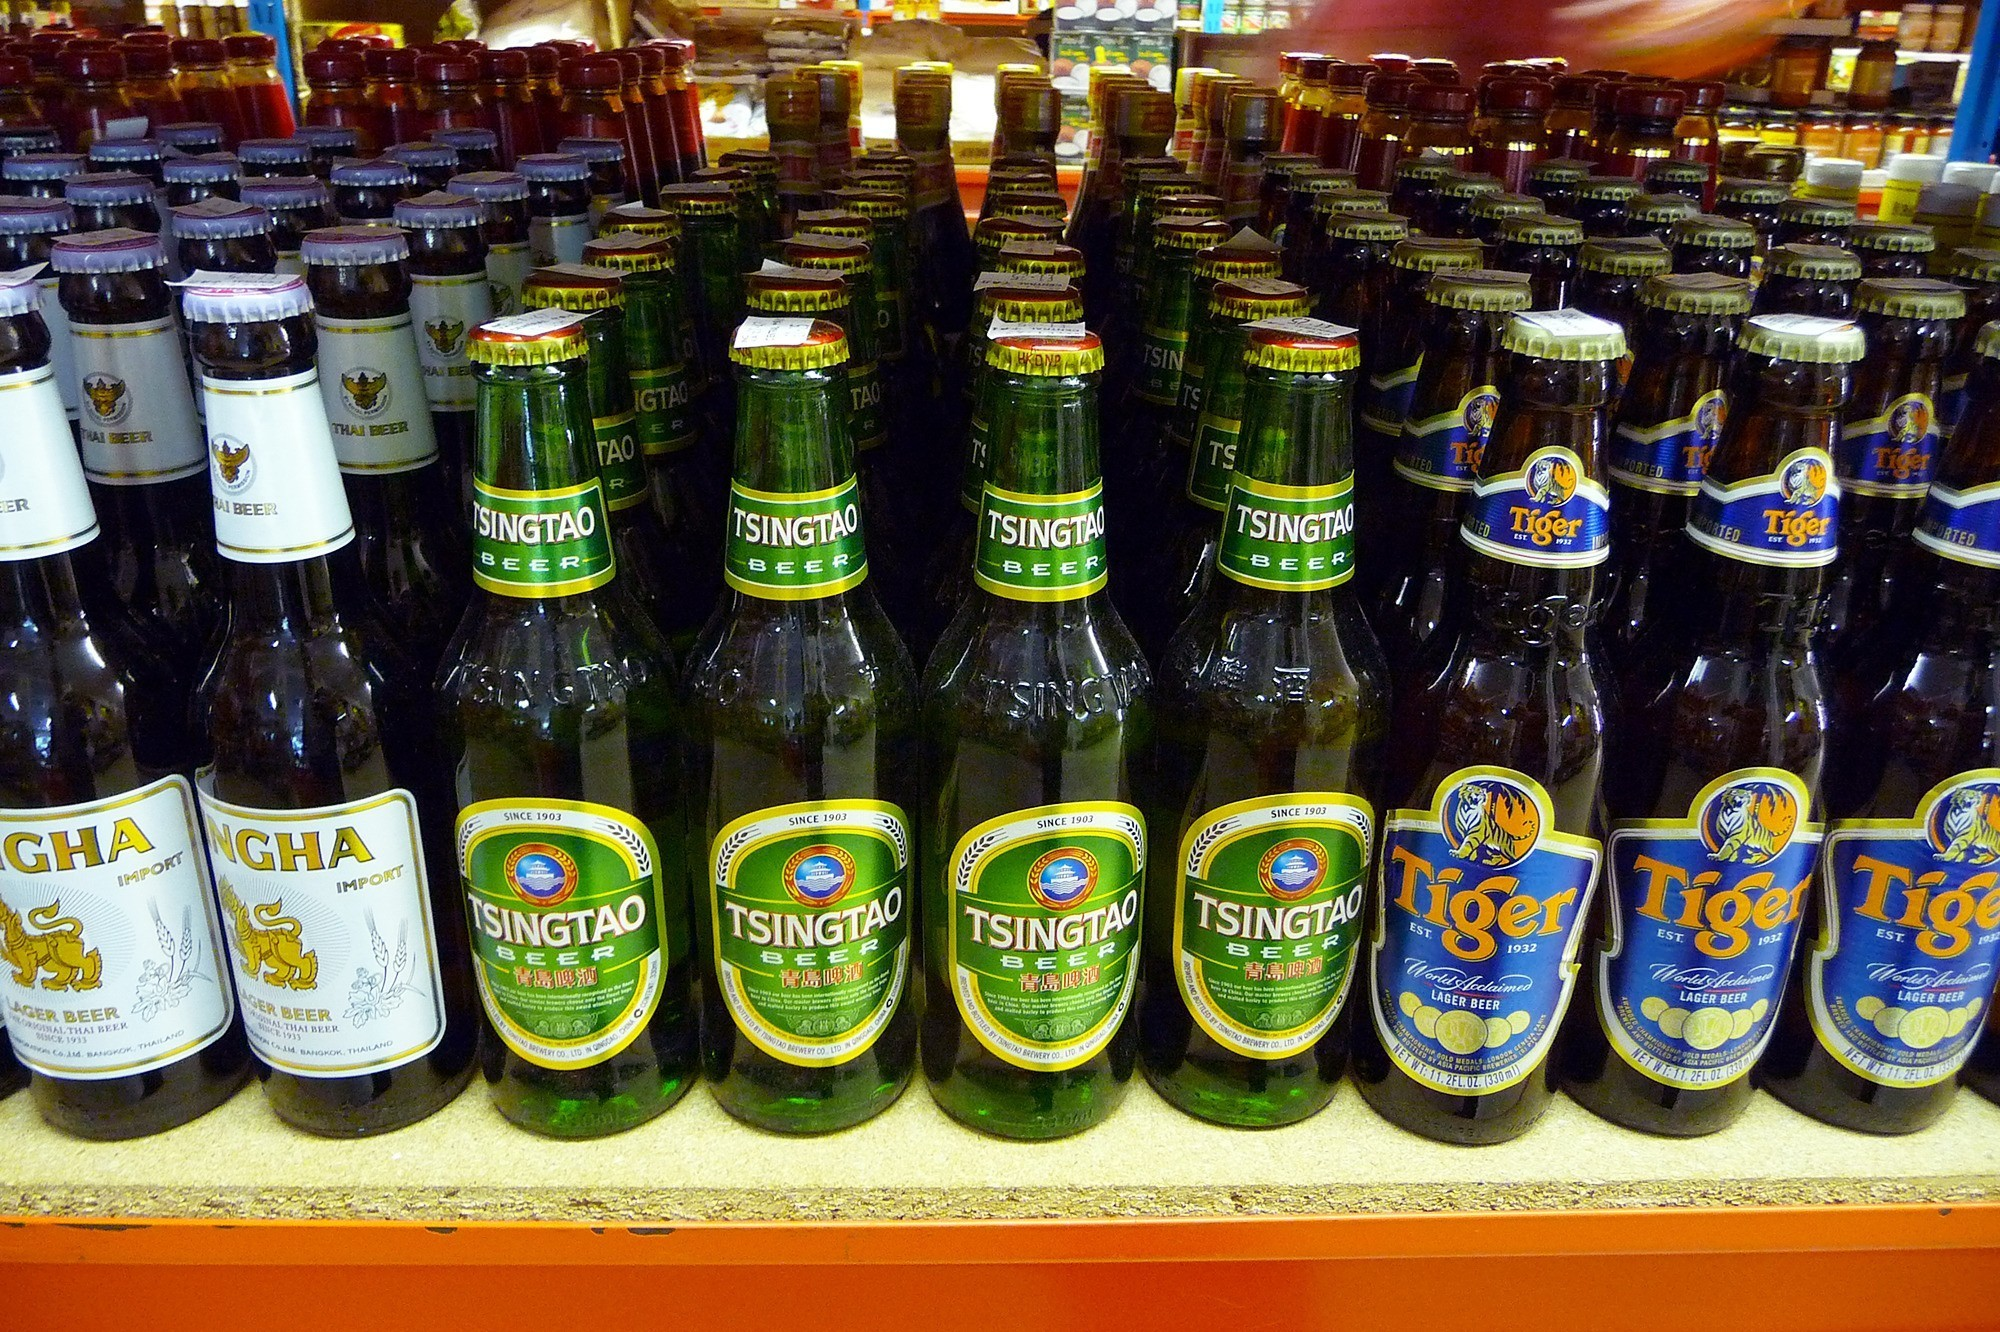 5,000-Year-Old Chinese Beer Recipe Revealed